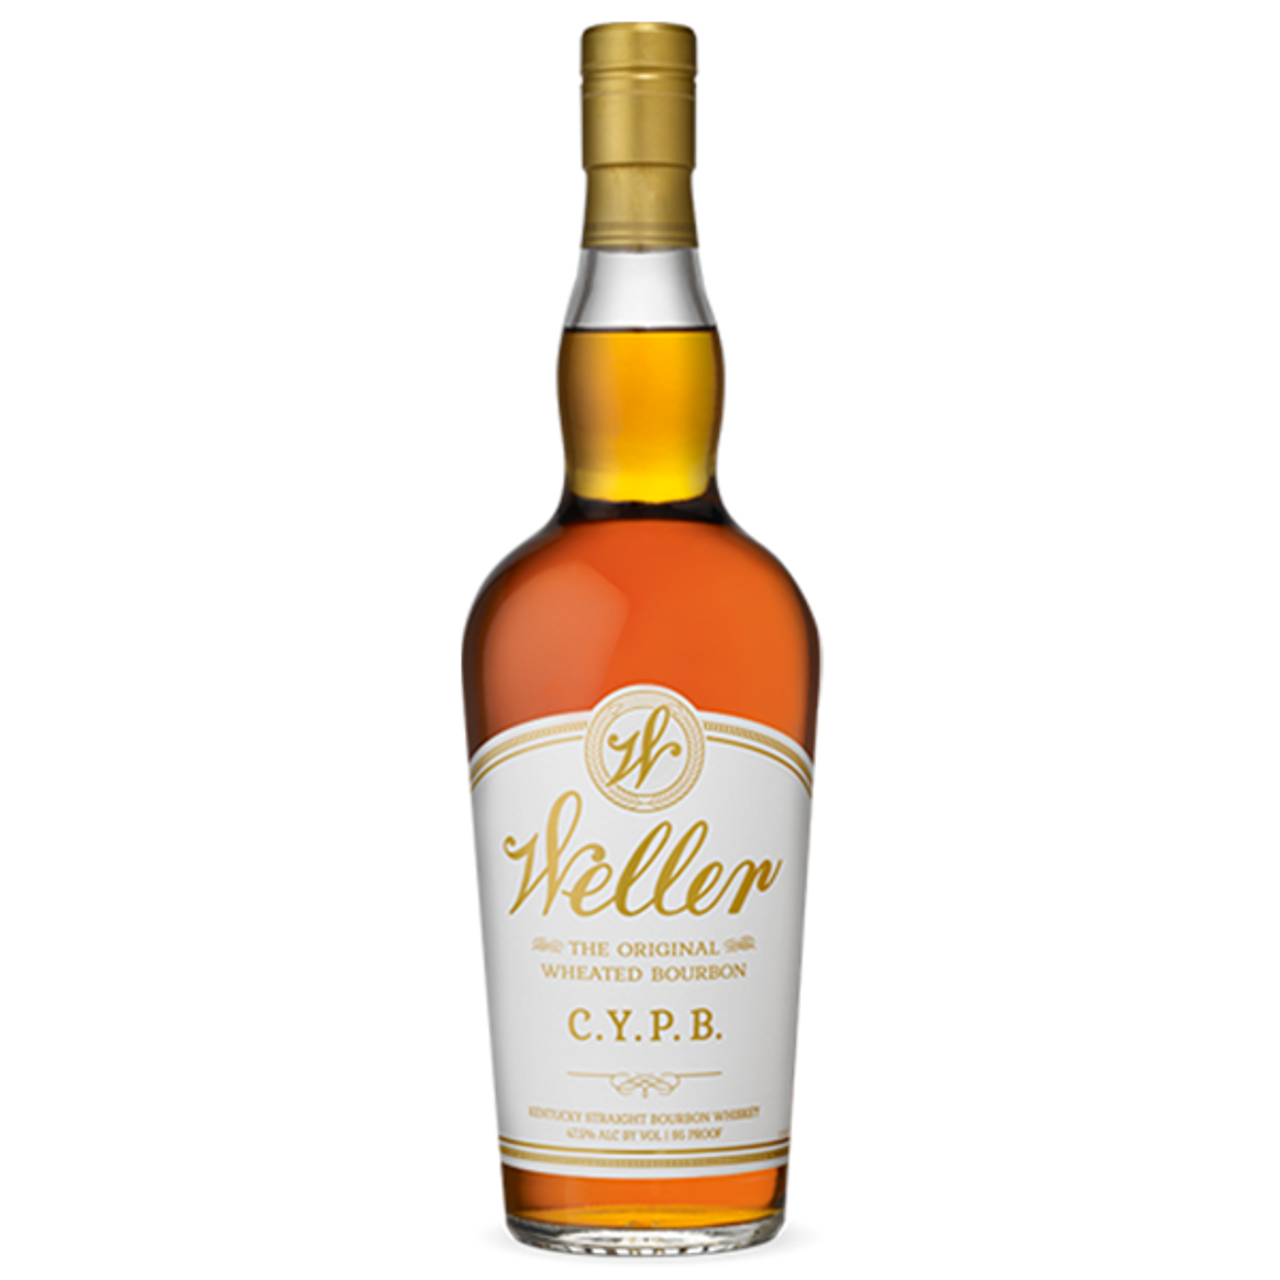 This limited edition whiskey is the result of the overwhelming consensus—a wheated recipe bourbon, aged on the highest warehouse floors for eight years and bottled at 95 proof.